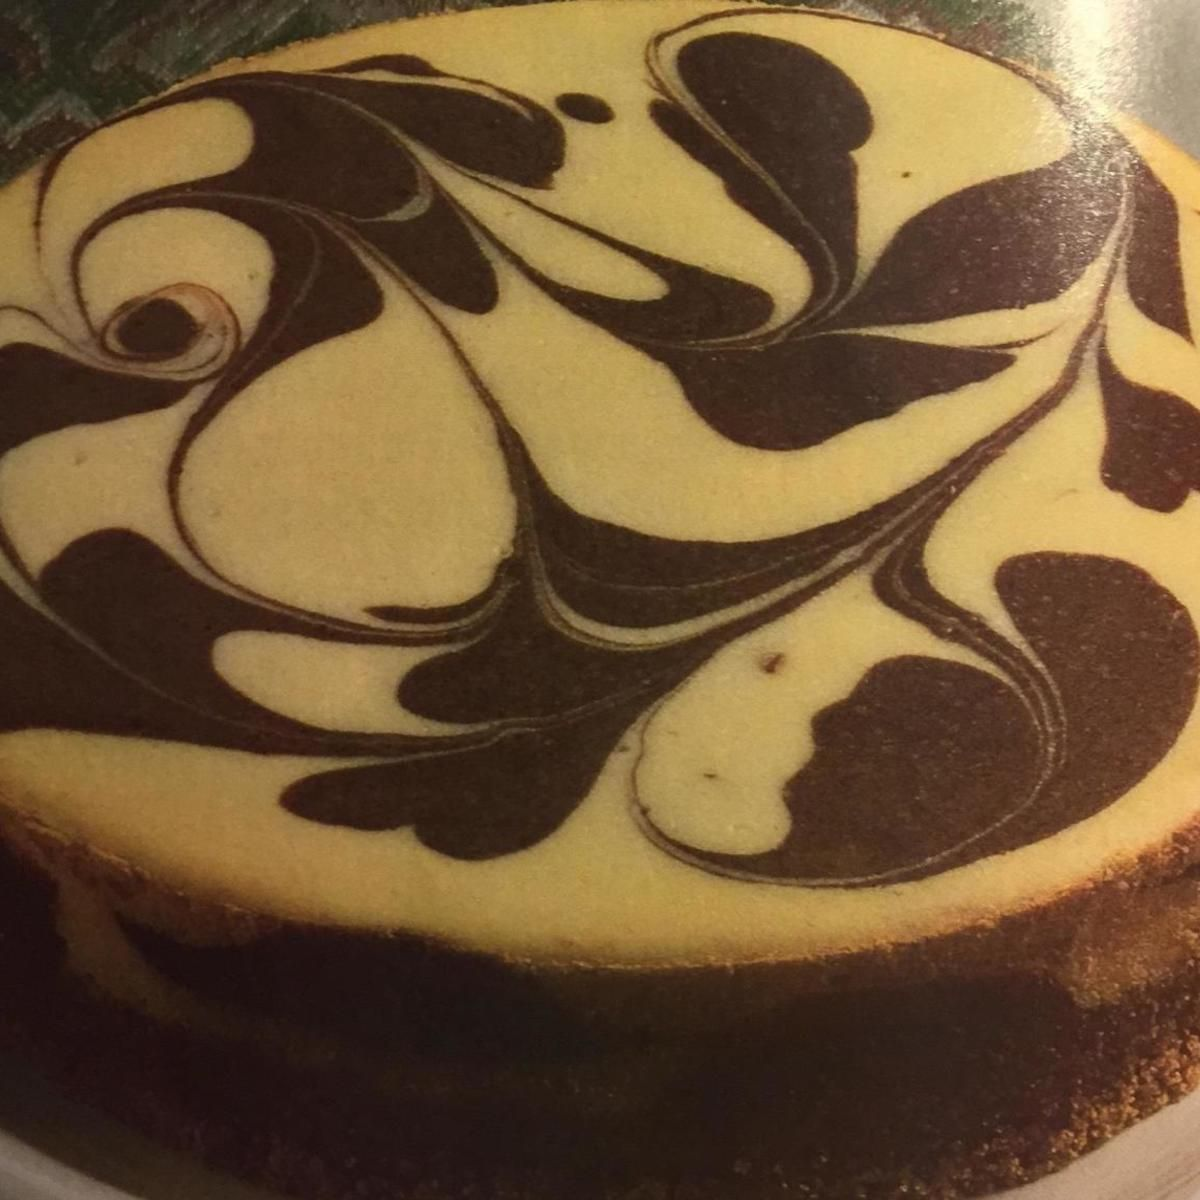 Marble Cheesecake Recipe Marble Cheesecake Chocolate Swirl Cheesecake Cheesecake